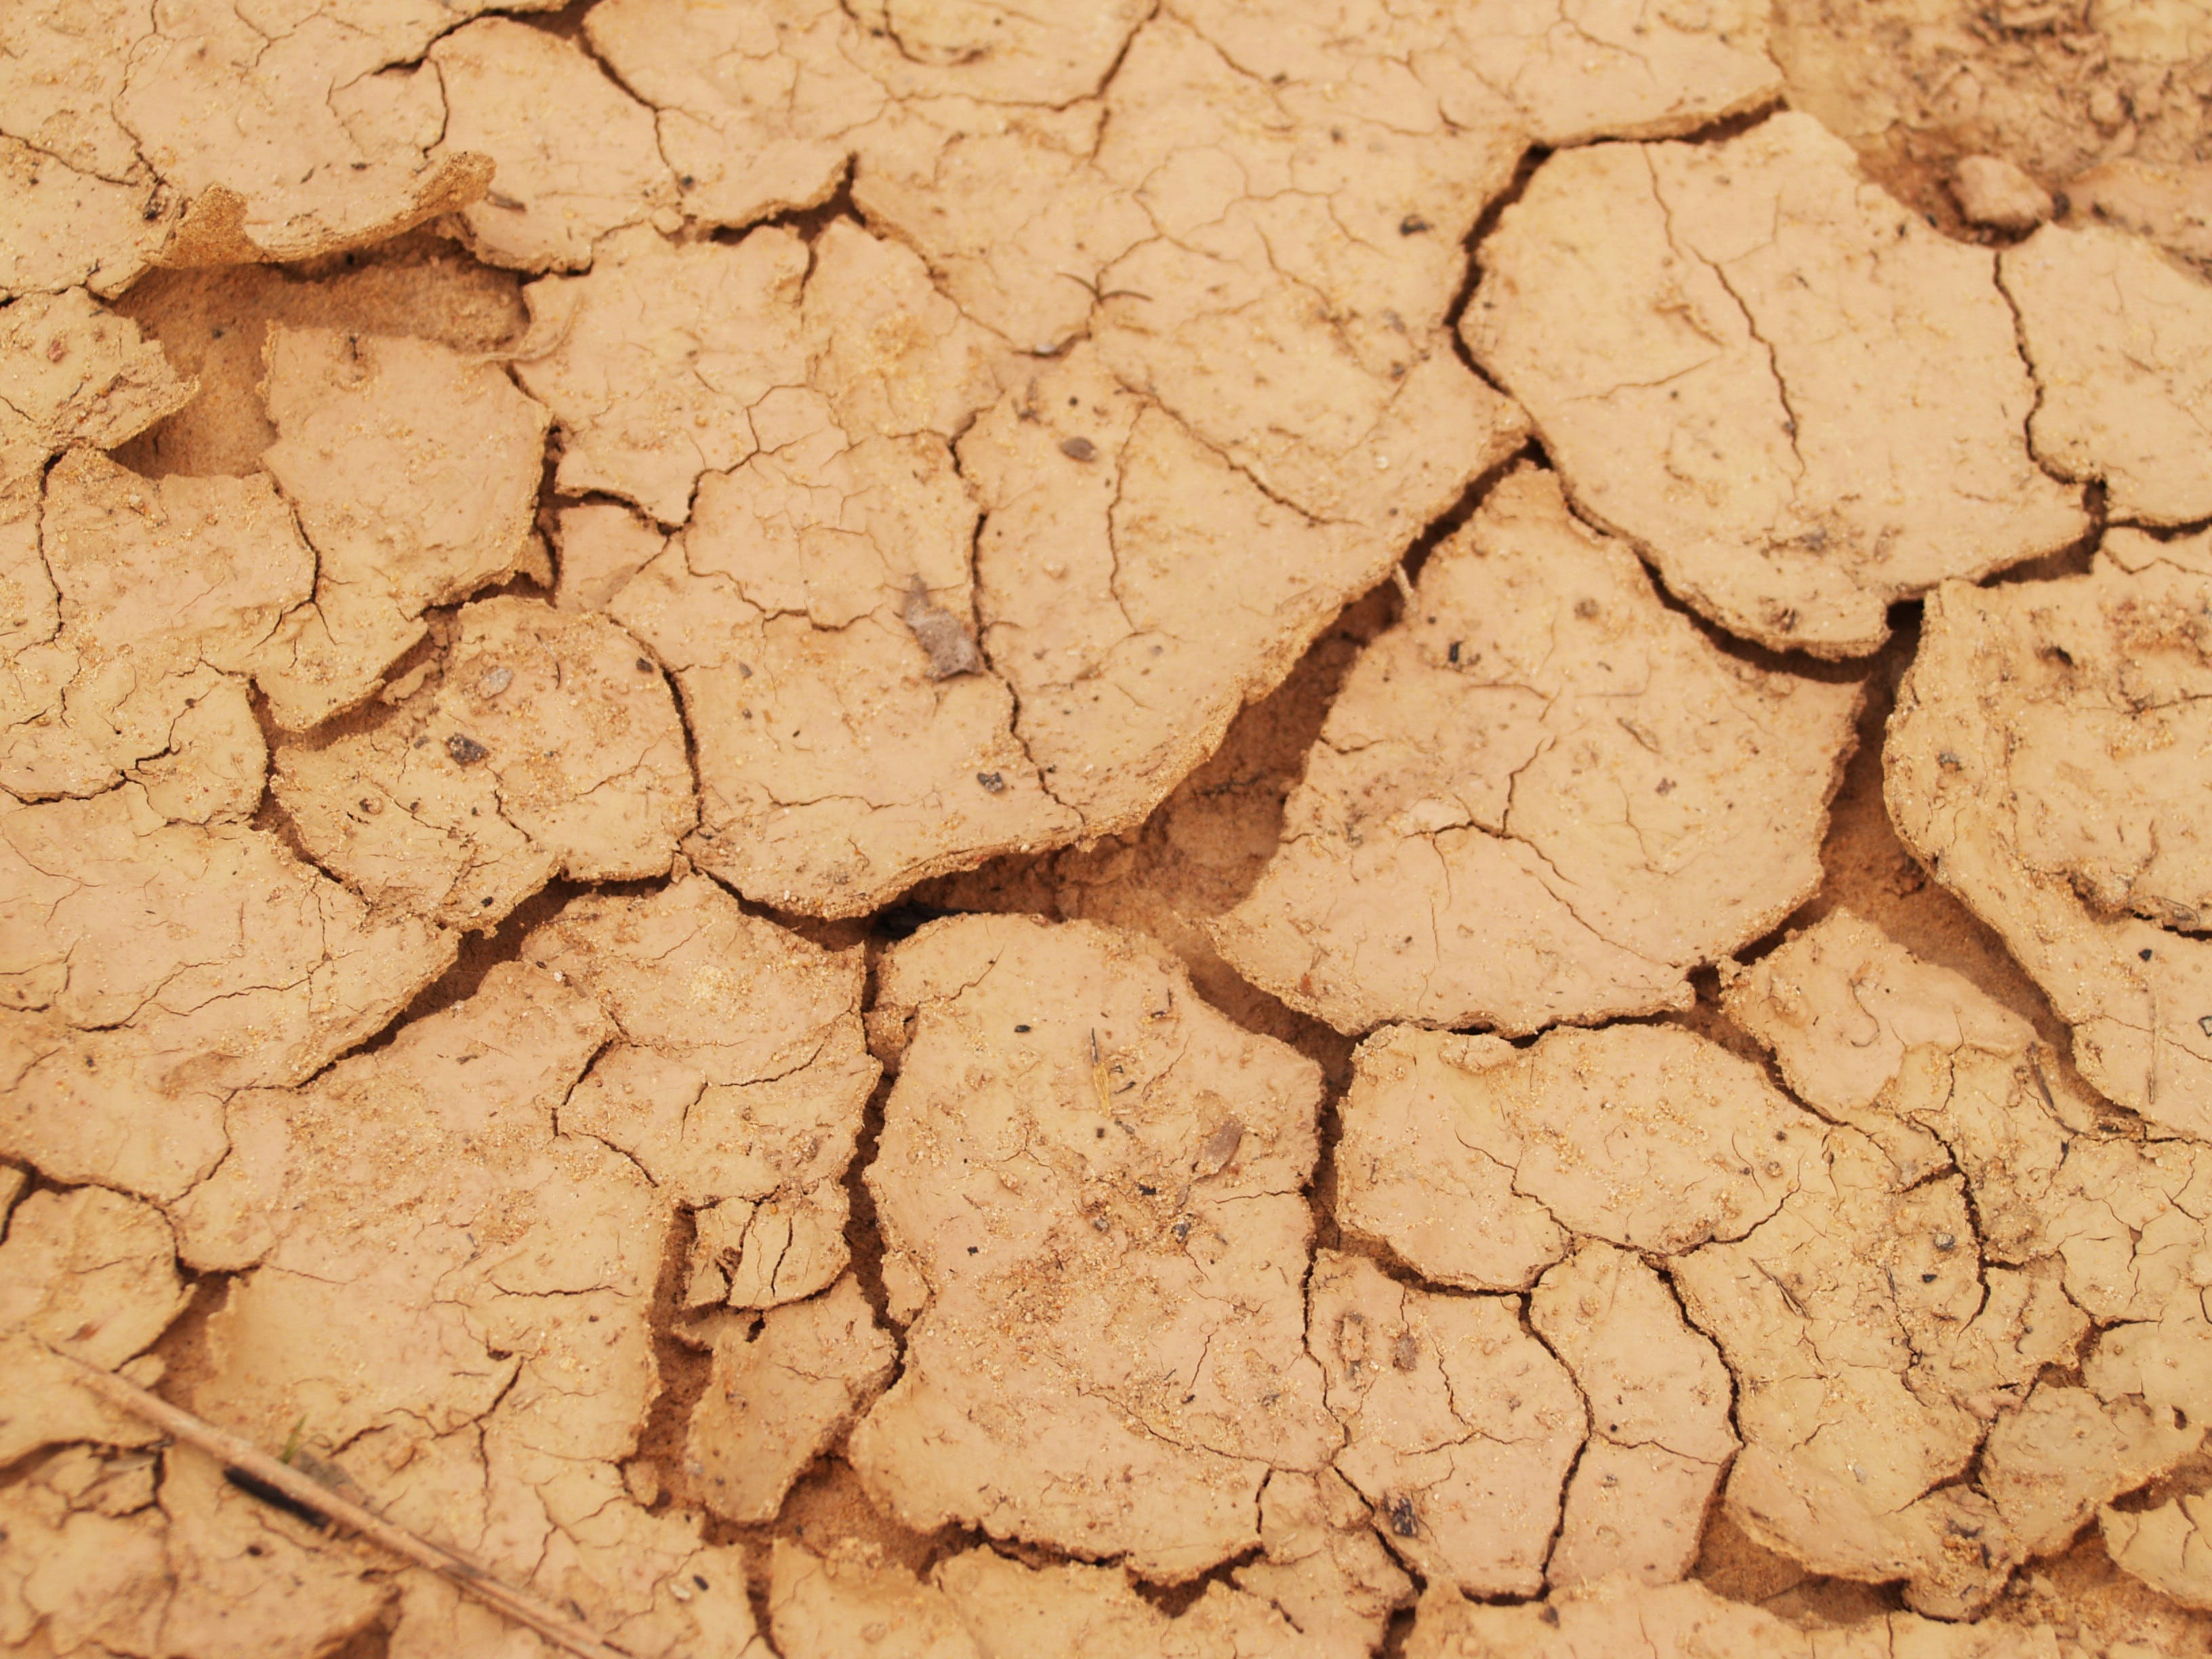 Free stock photo of nature, earth, summer, dry